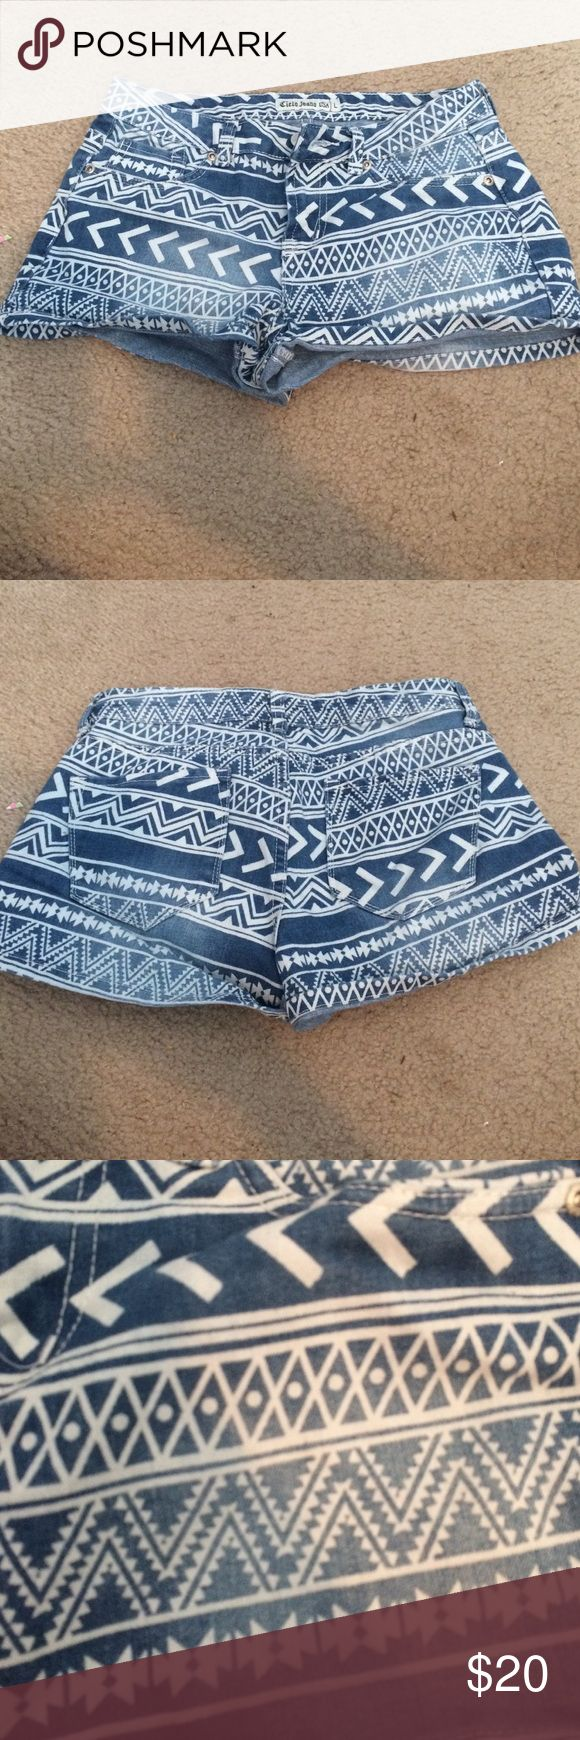 Aztec print jean shorts Light wash jean shorts with a white Aztec print on them! Size large, fits like a medium! cielo jeans USA Shorts Jean Shorts